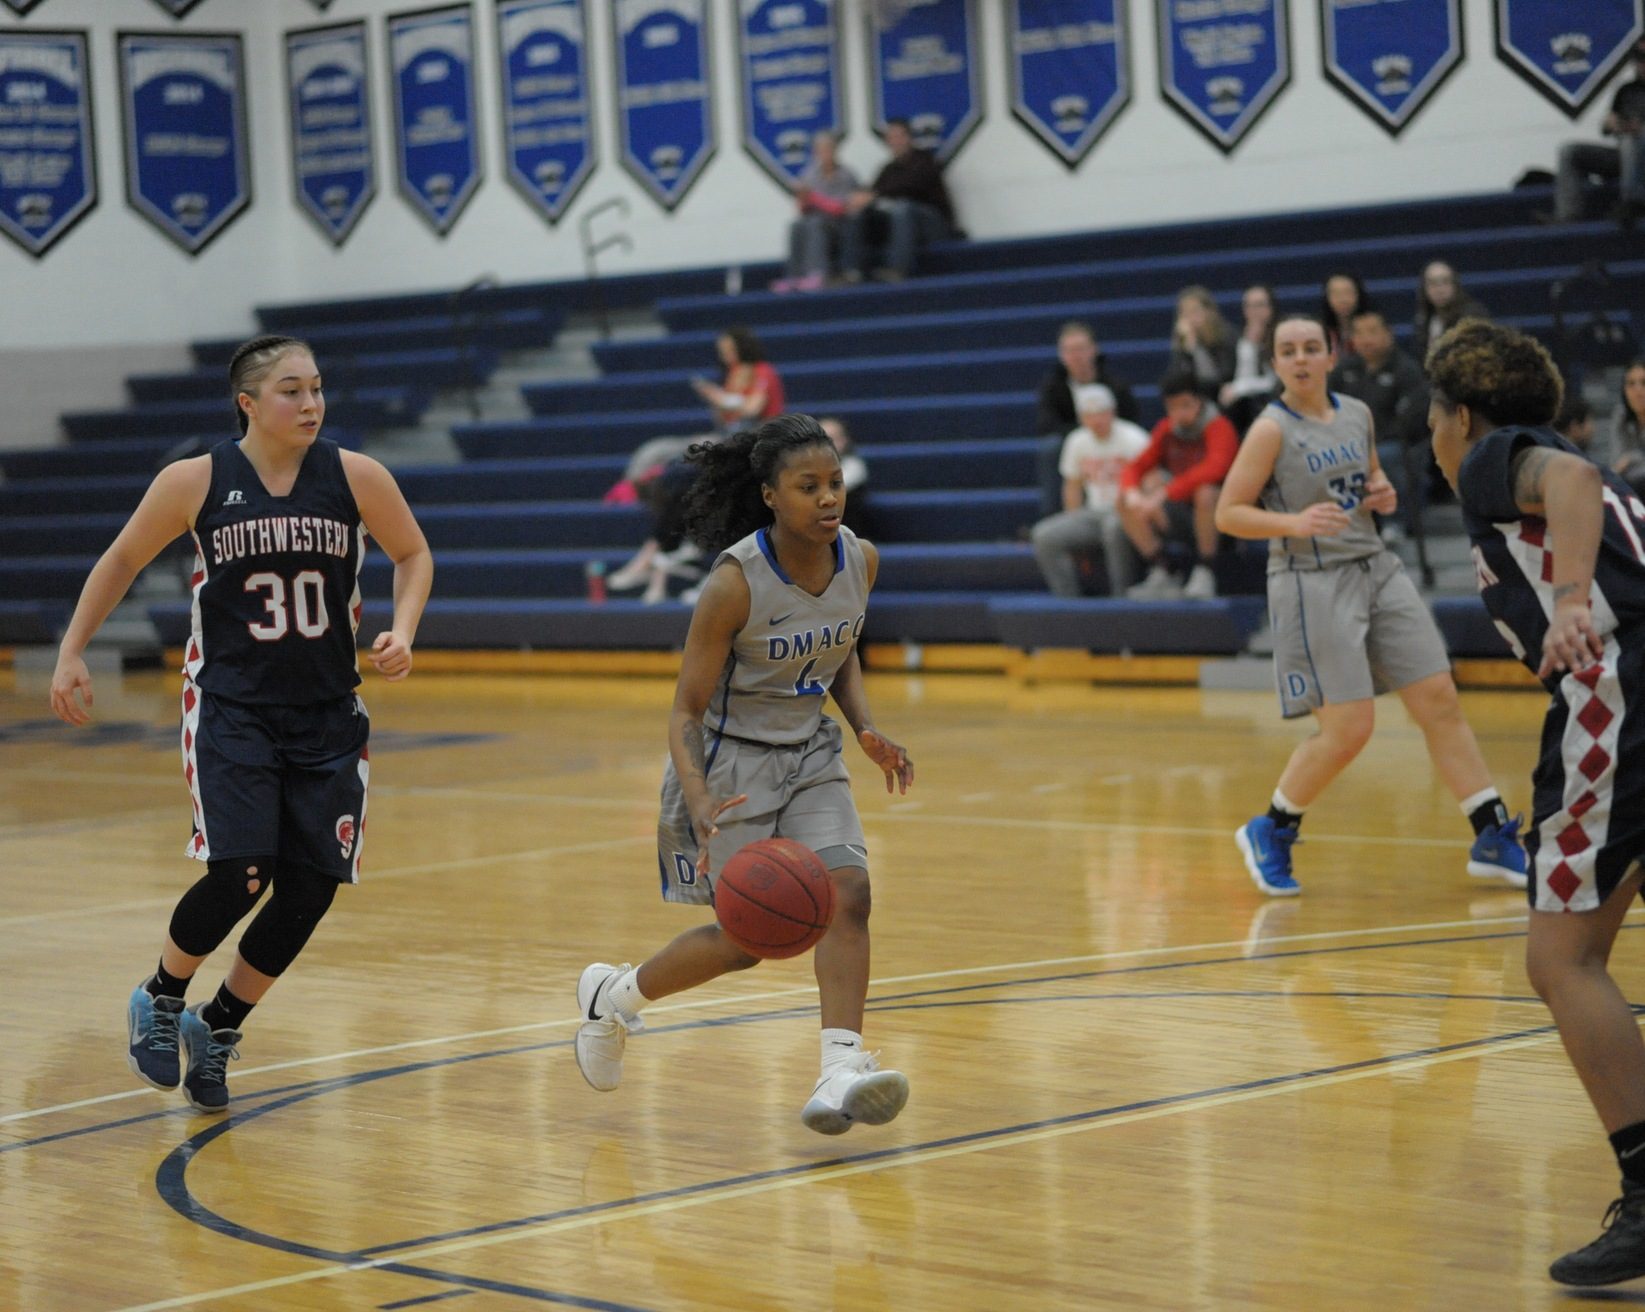 DMACC Women's Basketball Team Escapes Southwestern in OT, 67-63